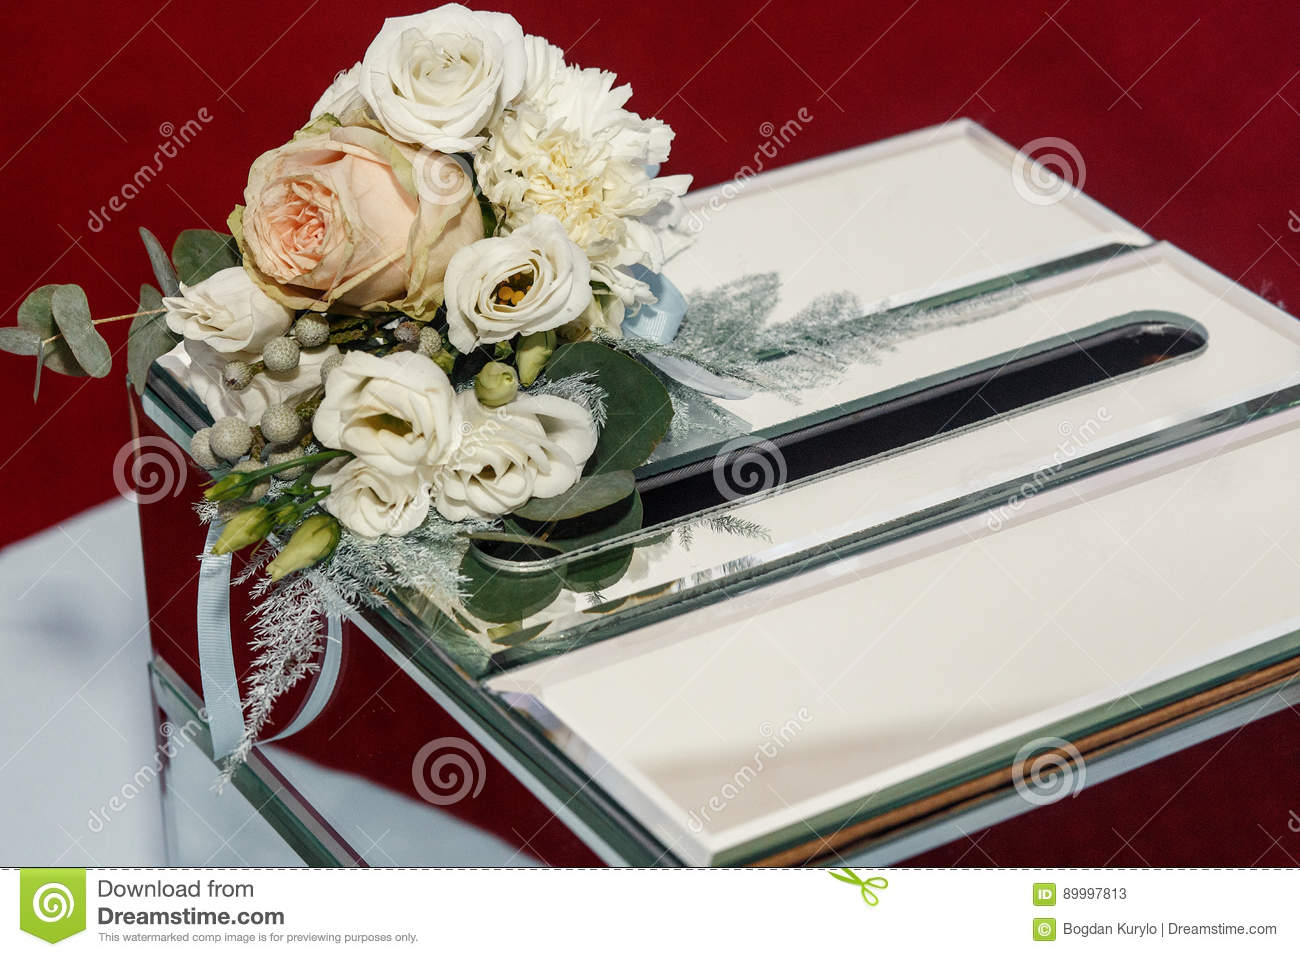 Expensive Wedding Gift Ideas: Luxury Wedding Gift Box With Roses And Expensive Golden